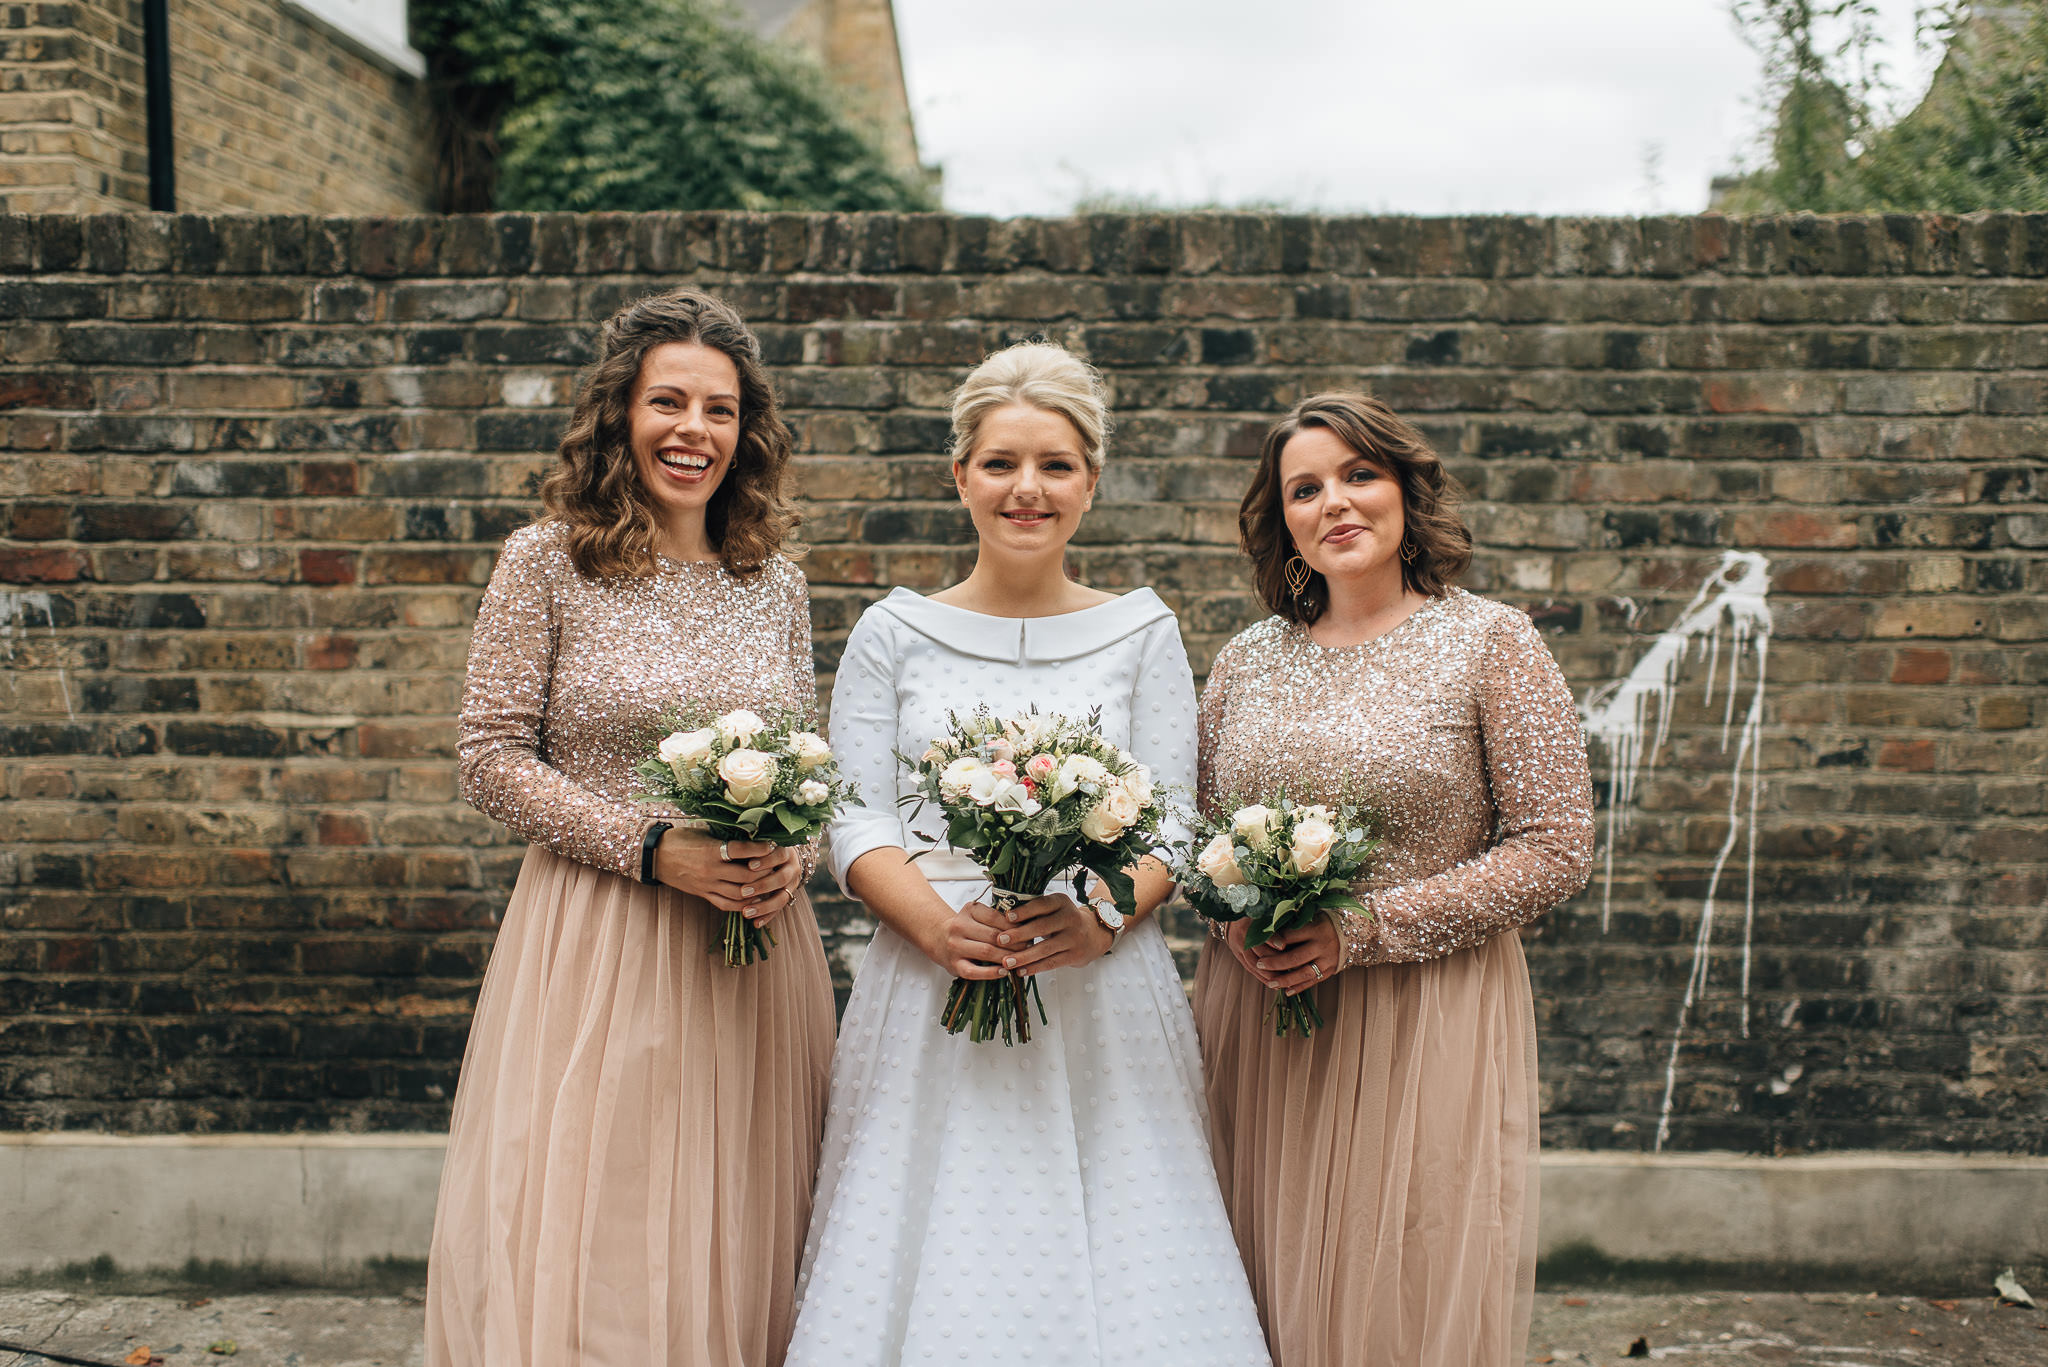 Cool vintage london bride in stoke newington town hall wedding by creative and alternative london wedding photographer the shannons photography